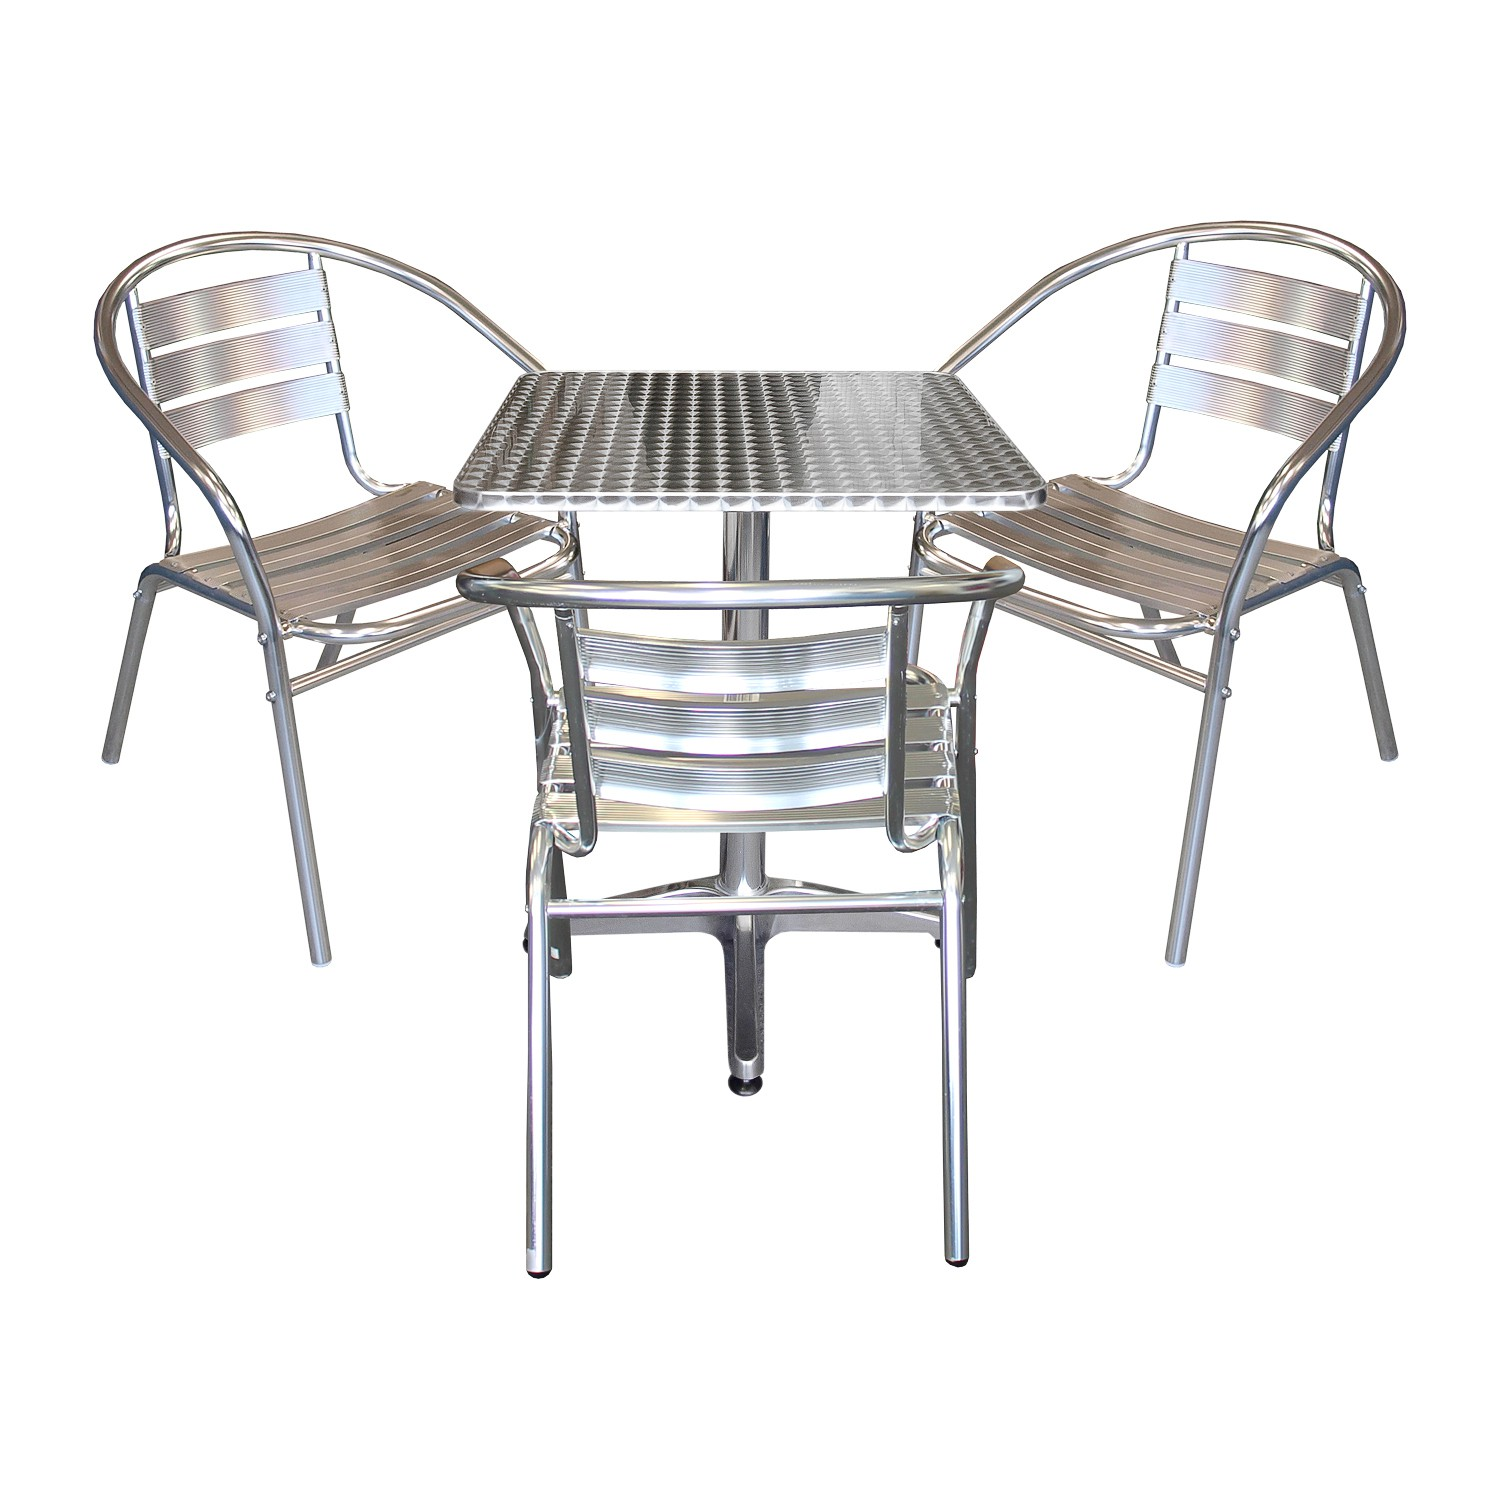 balkonm bel terrassenm bel bistrotisch klappbar 60x60cm 3x aluminium stapelstuhl ebay. Black Bedroom Furniture Sets. Home Design Ideas